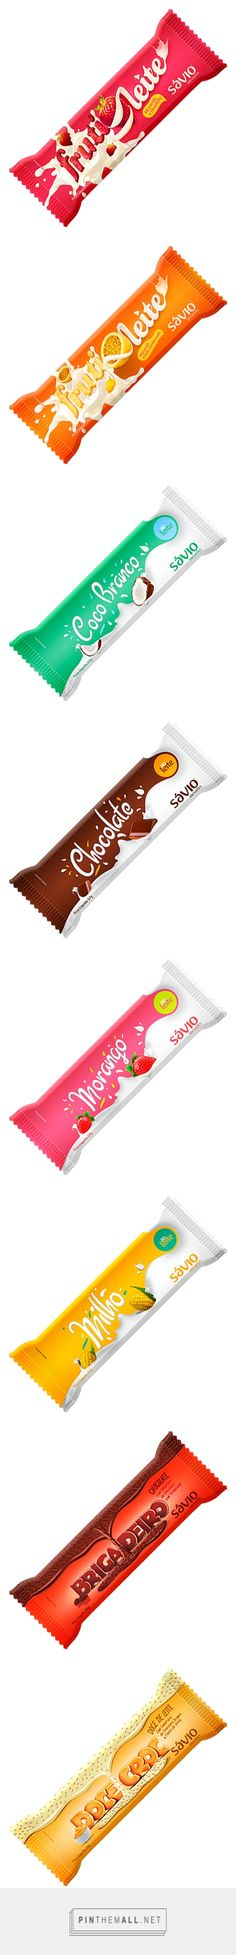 Sávio Sorvetes. Pin curated by #SFields99 #packaging